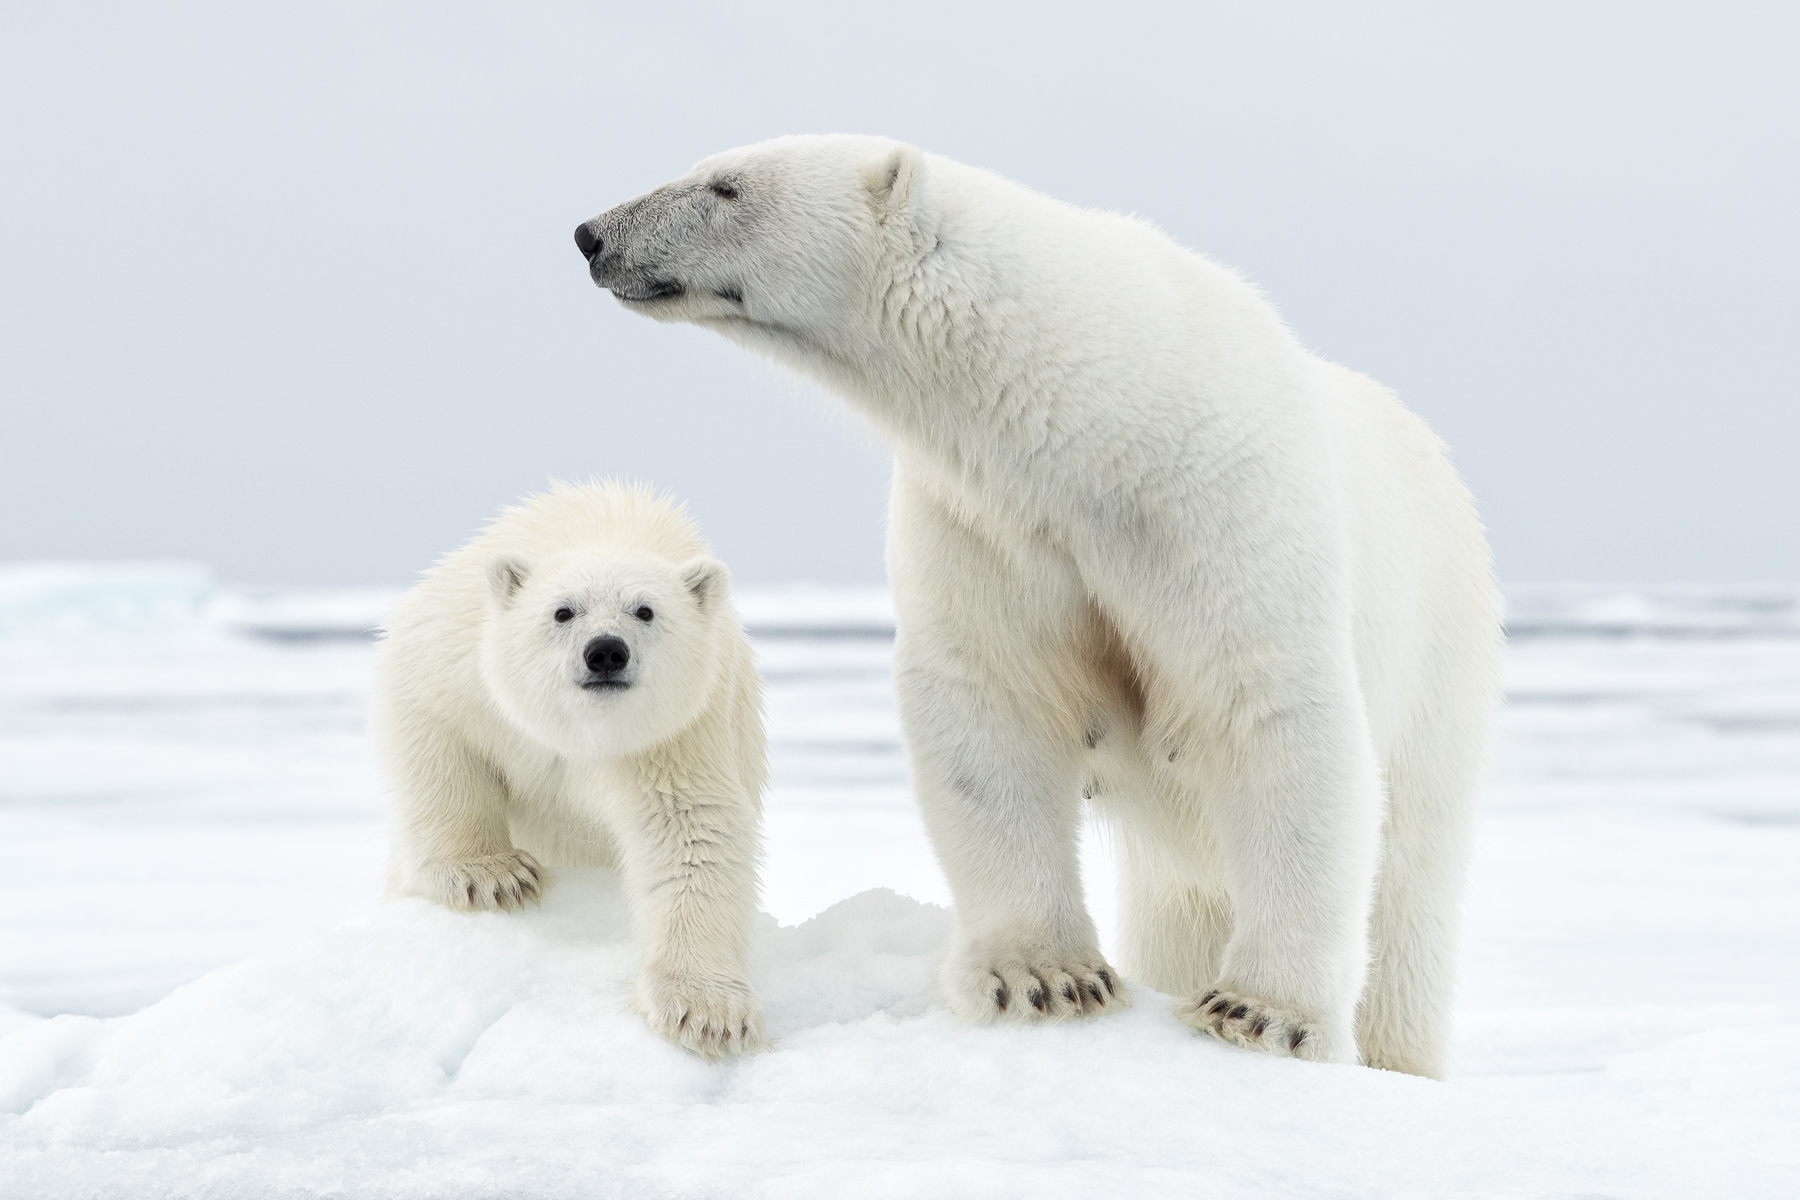 PolarBear-MotherandCub1.jpg